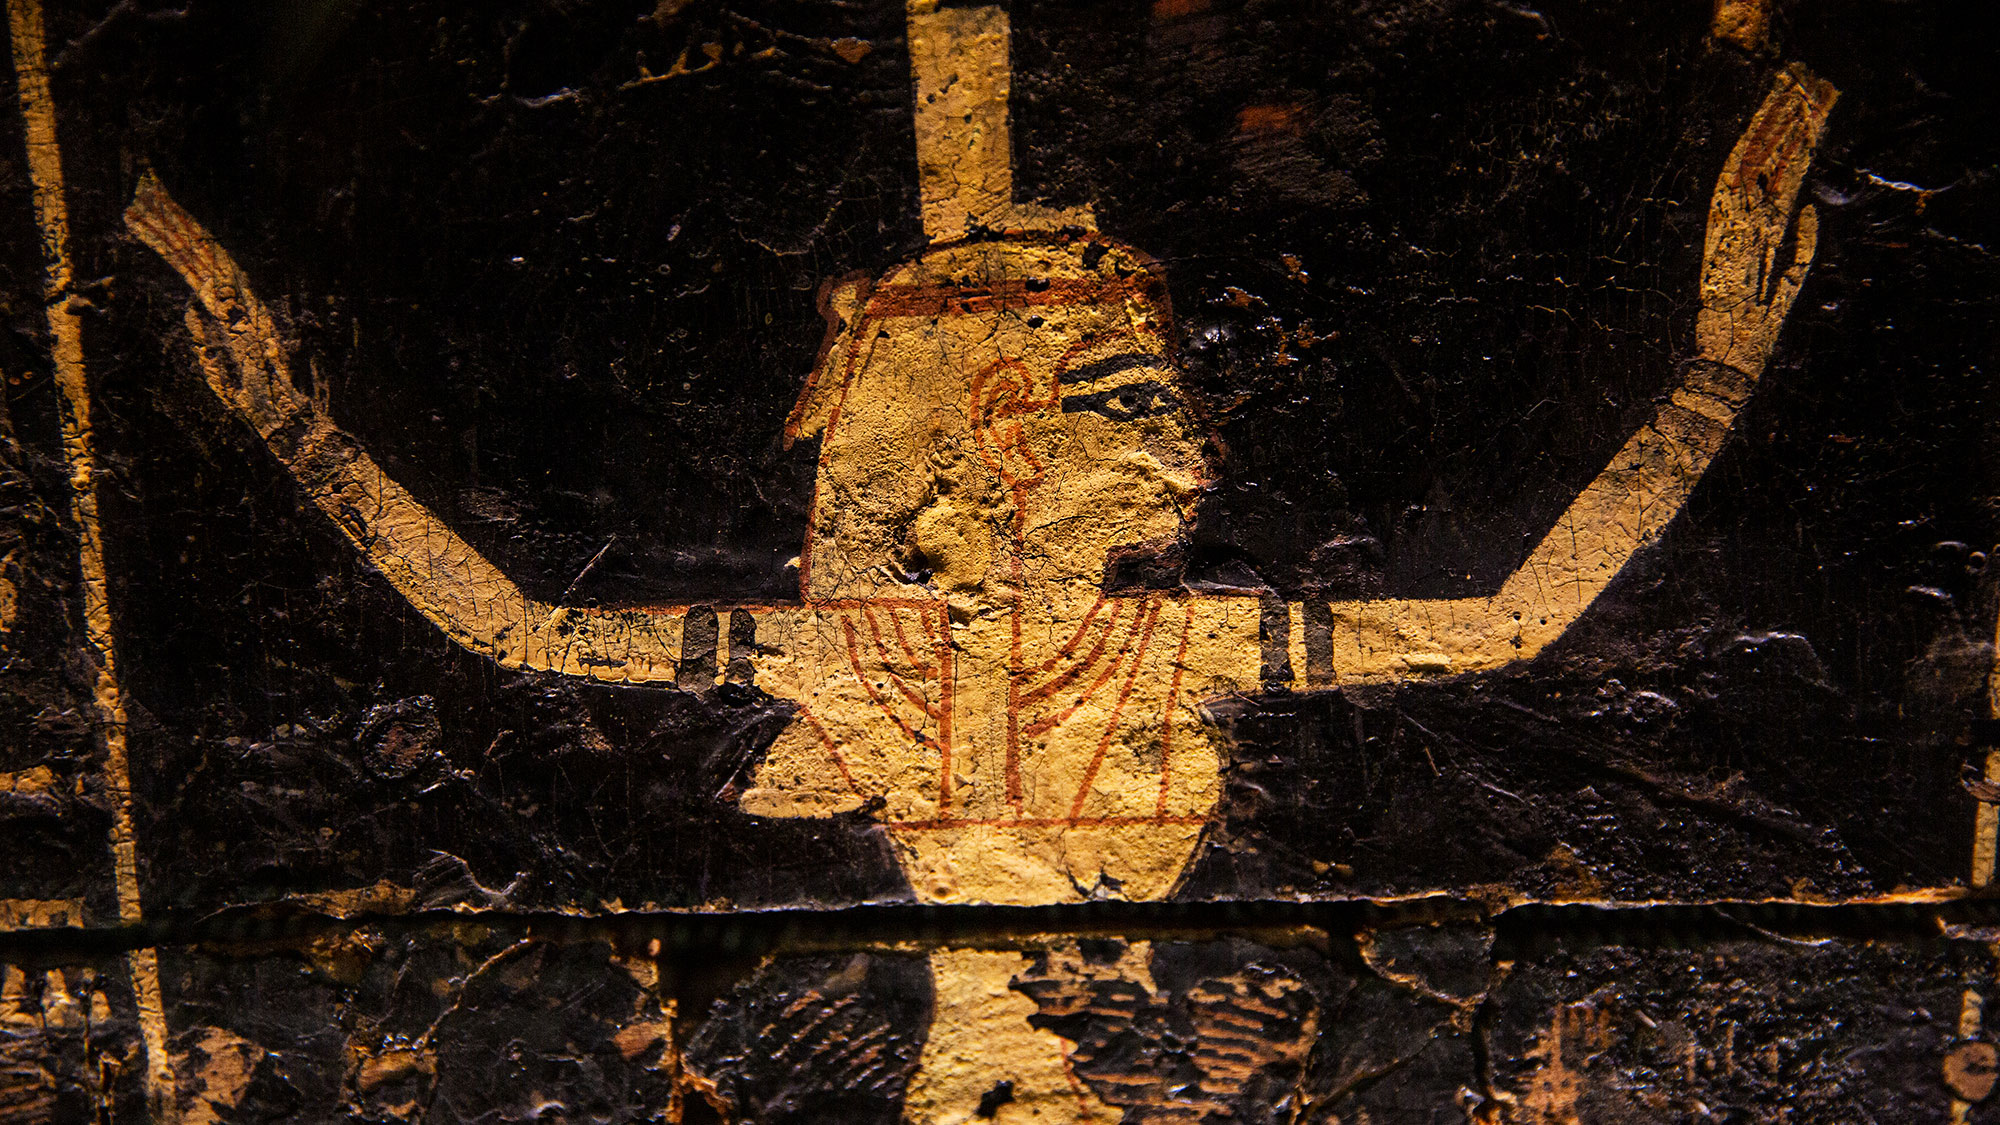 Egyptian art, with a woman in gold in a hieroglyphic style, with her arms raised high and her head looking left.